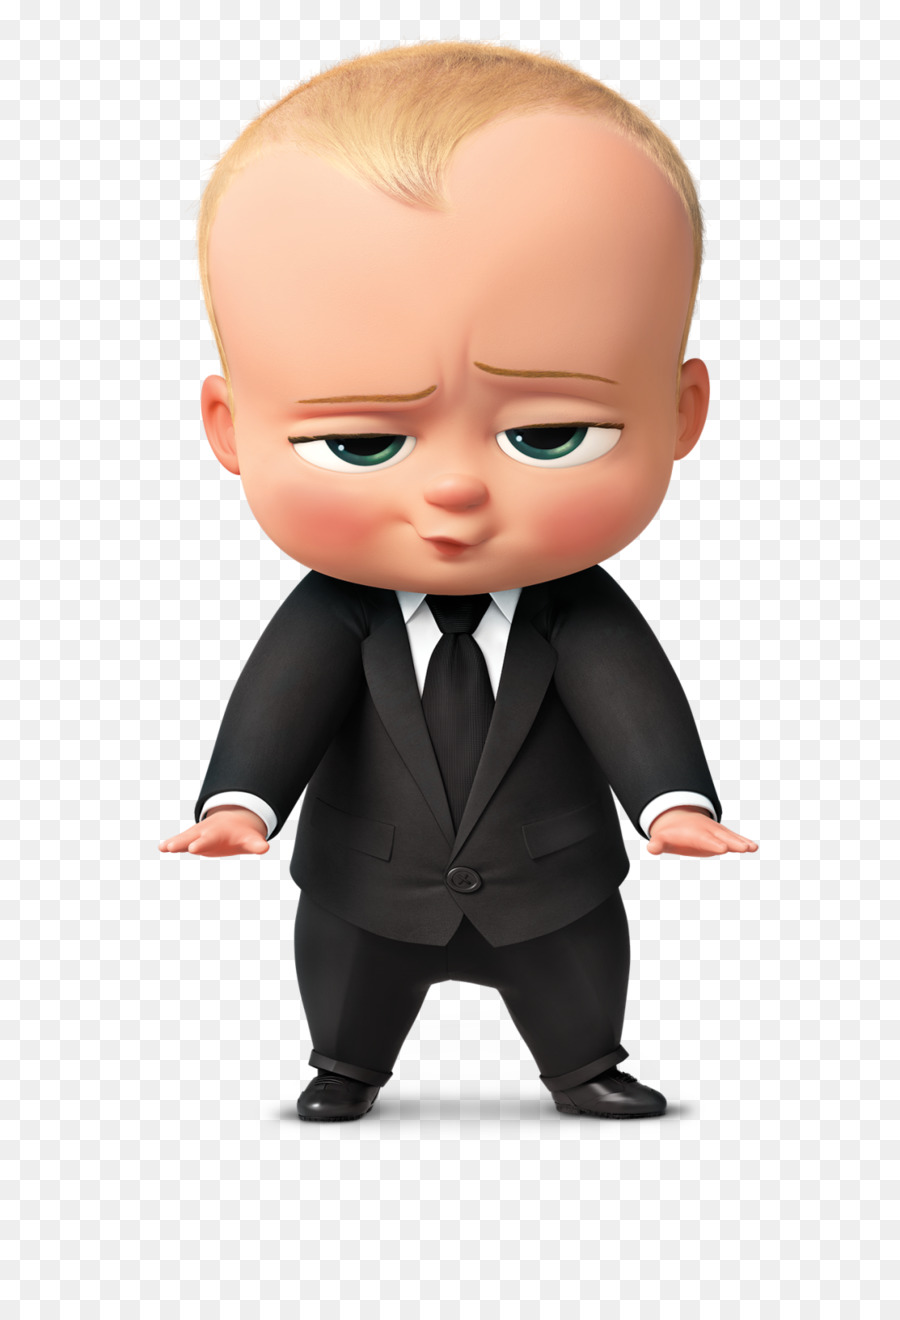 Boss Baby Background Png Download 1137 1643 Free